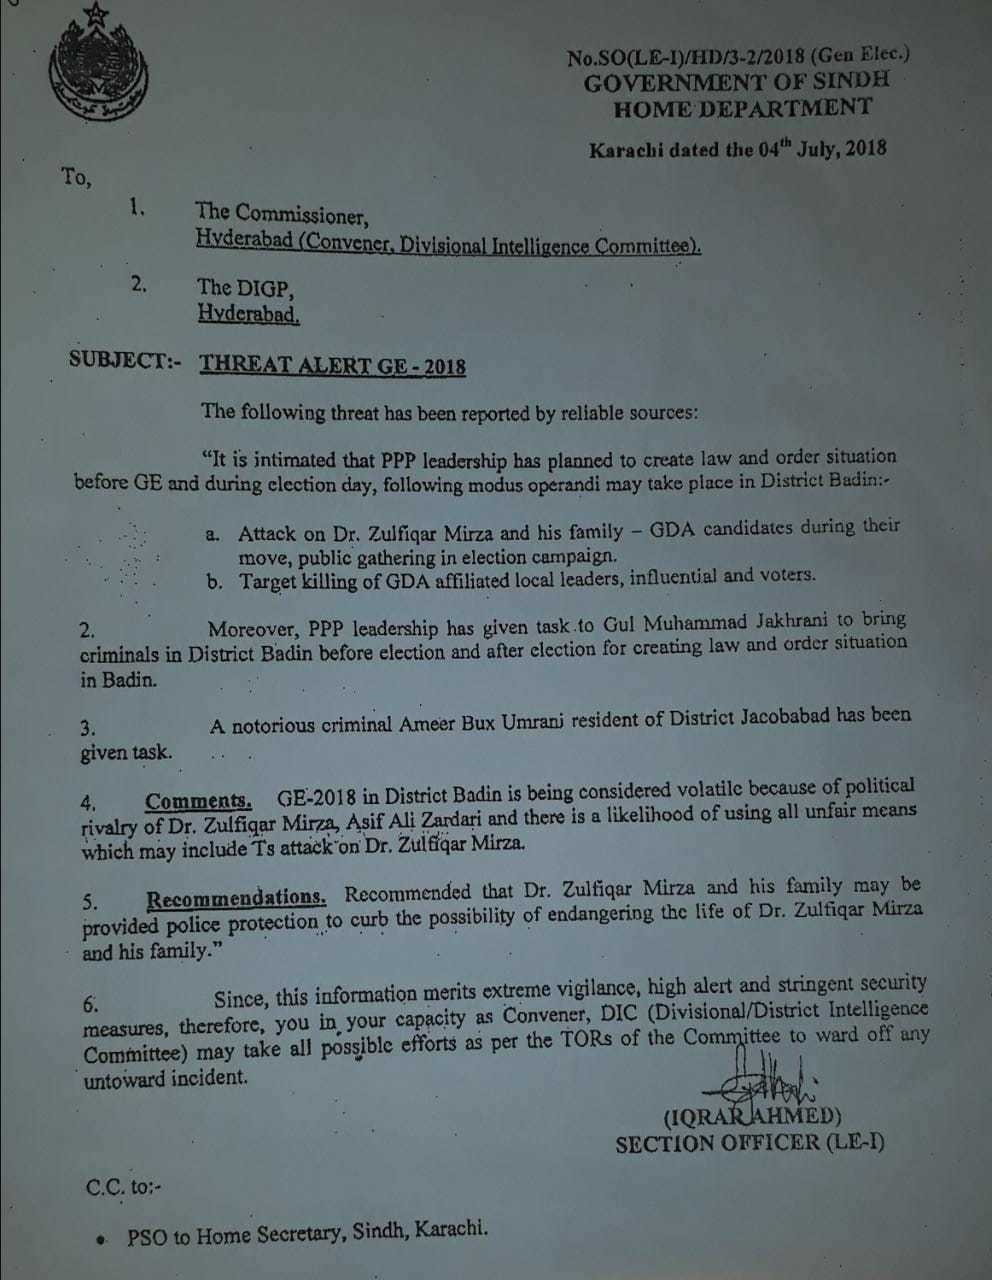 A copy of the threat alert issued by Sindh home department.